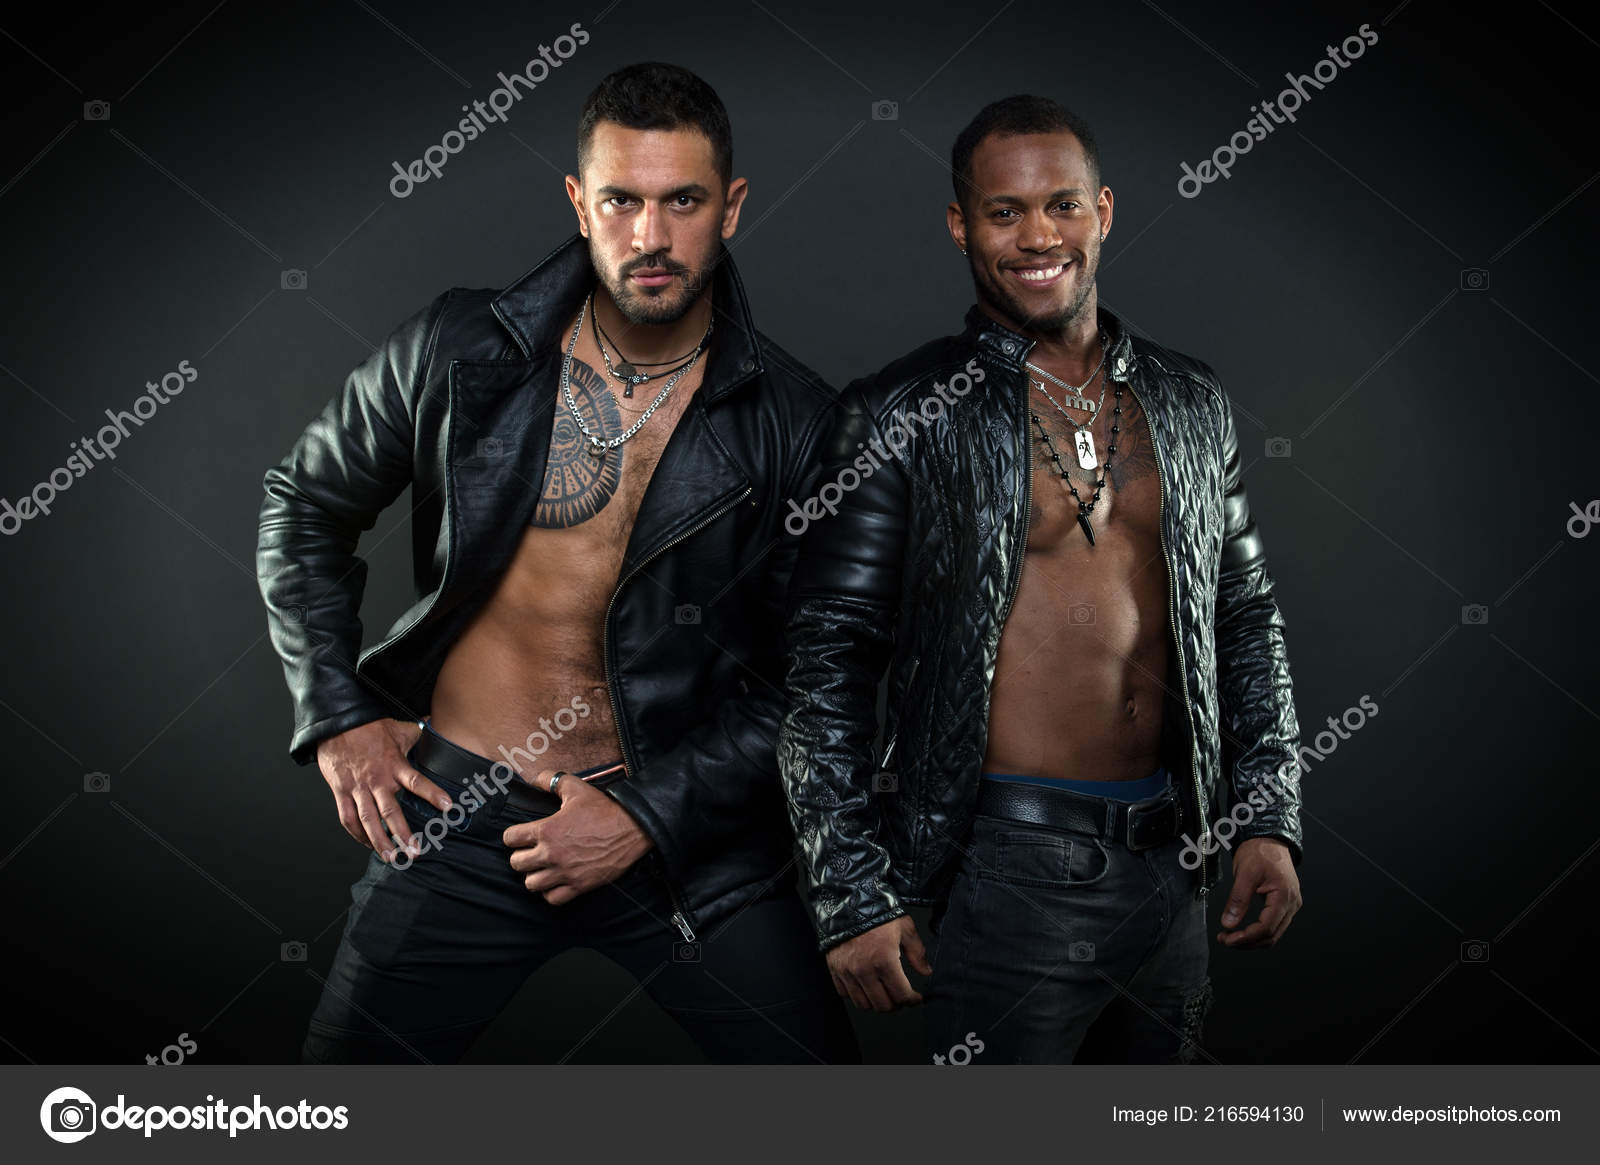 Leather muscle men